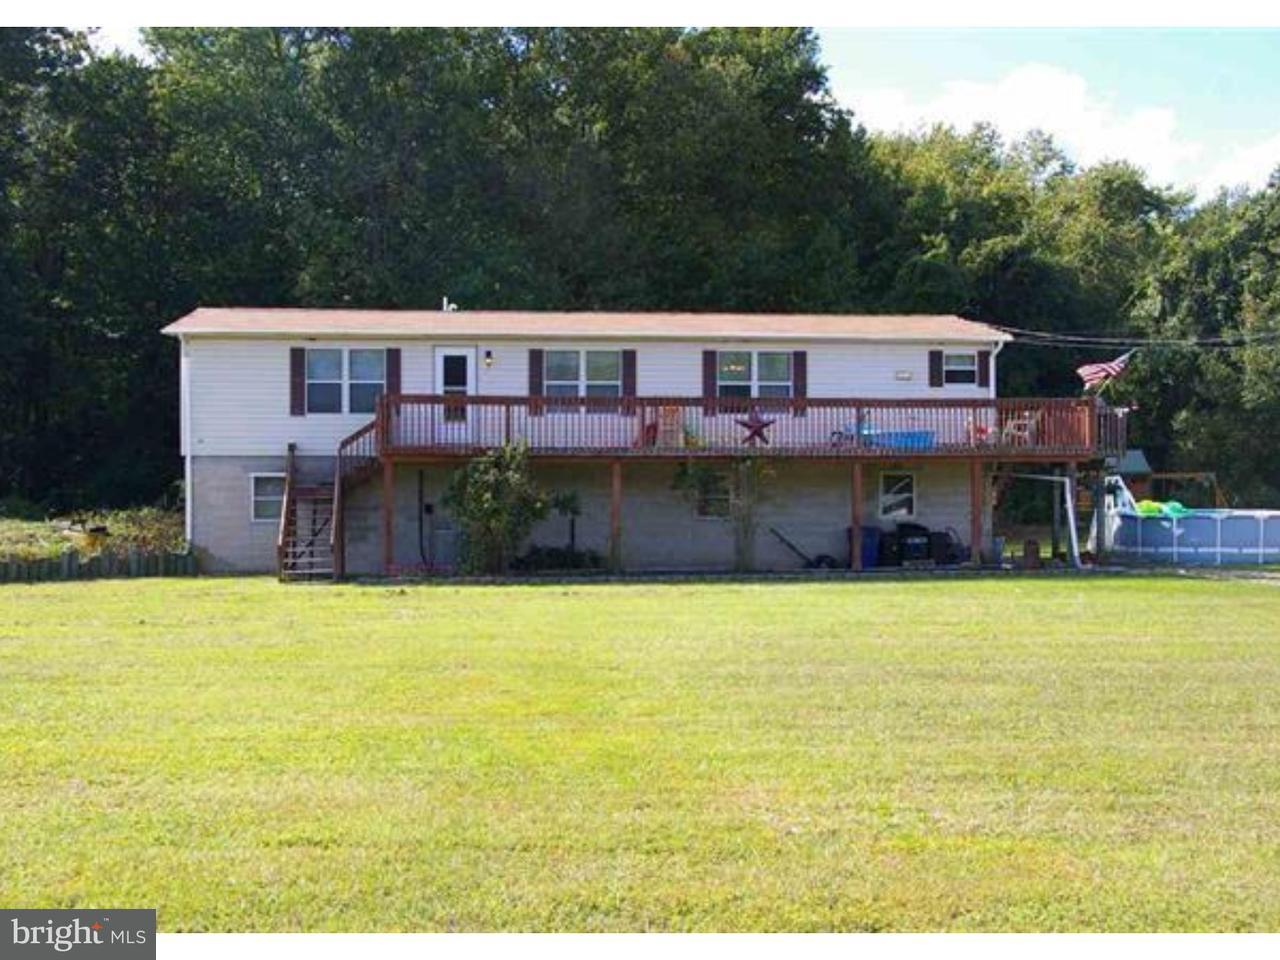 Single Family Home for Sale at 3 LANGLEY Road Delmont, New Jersey 08332 United States